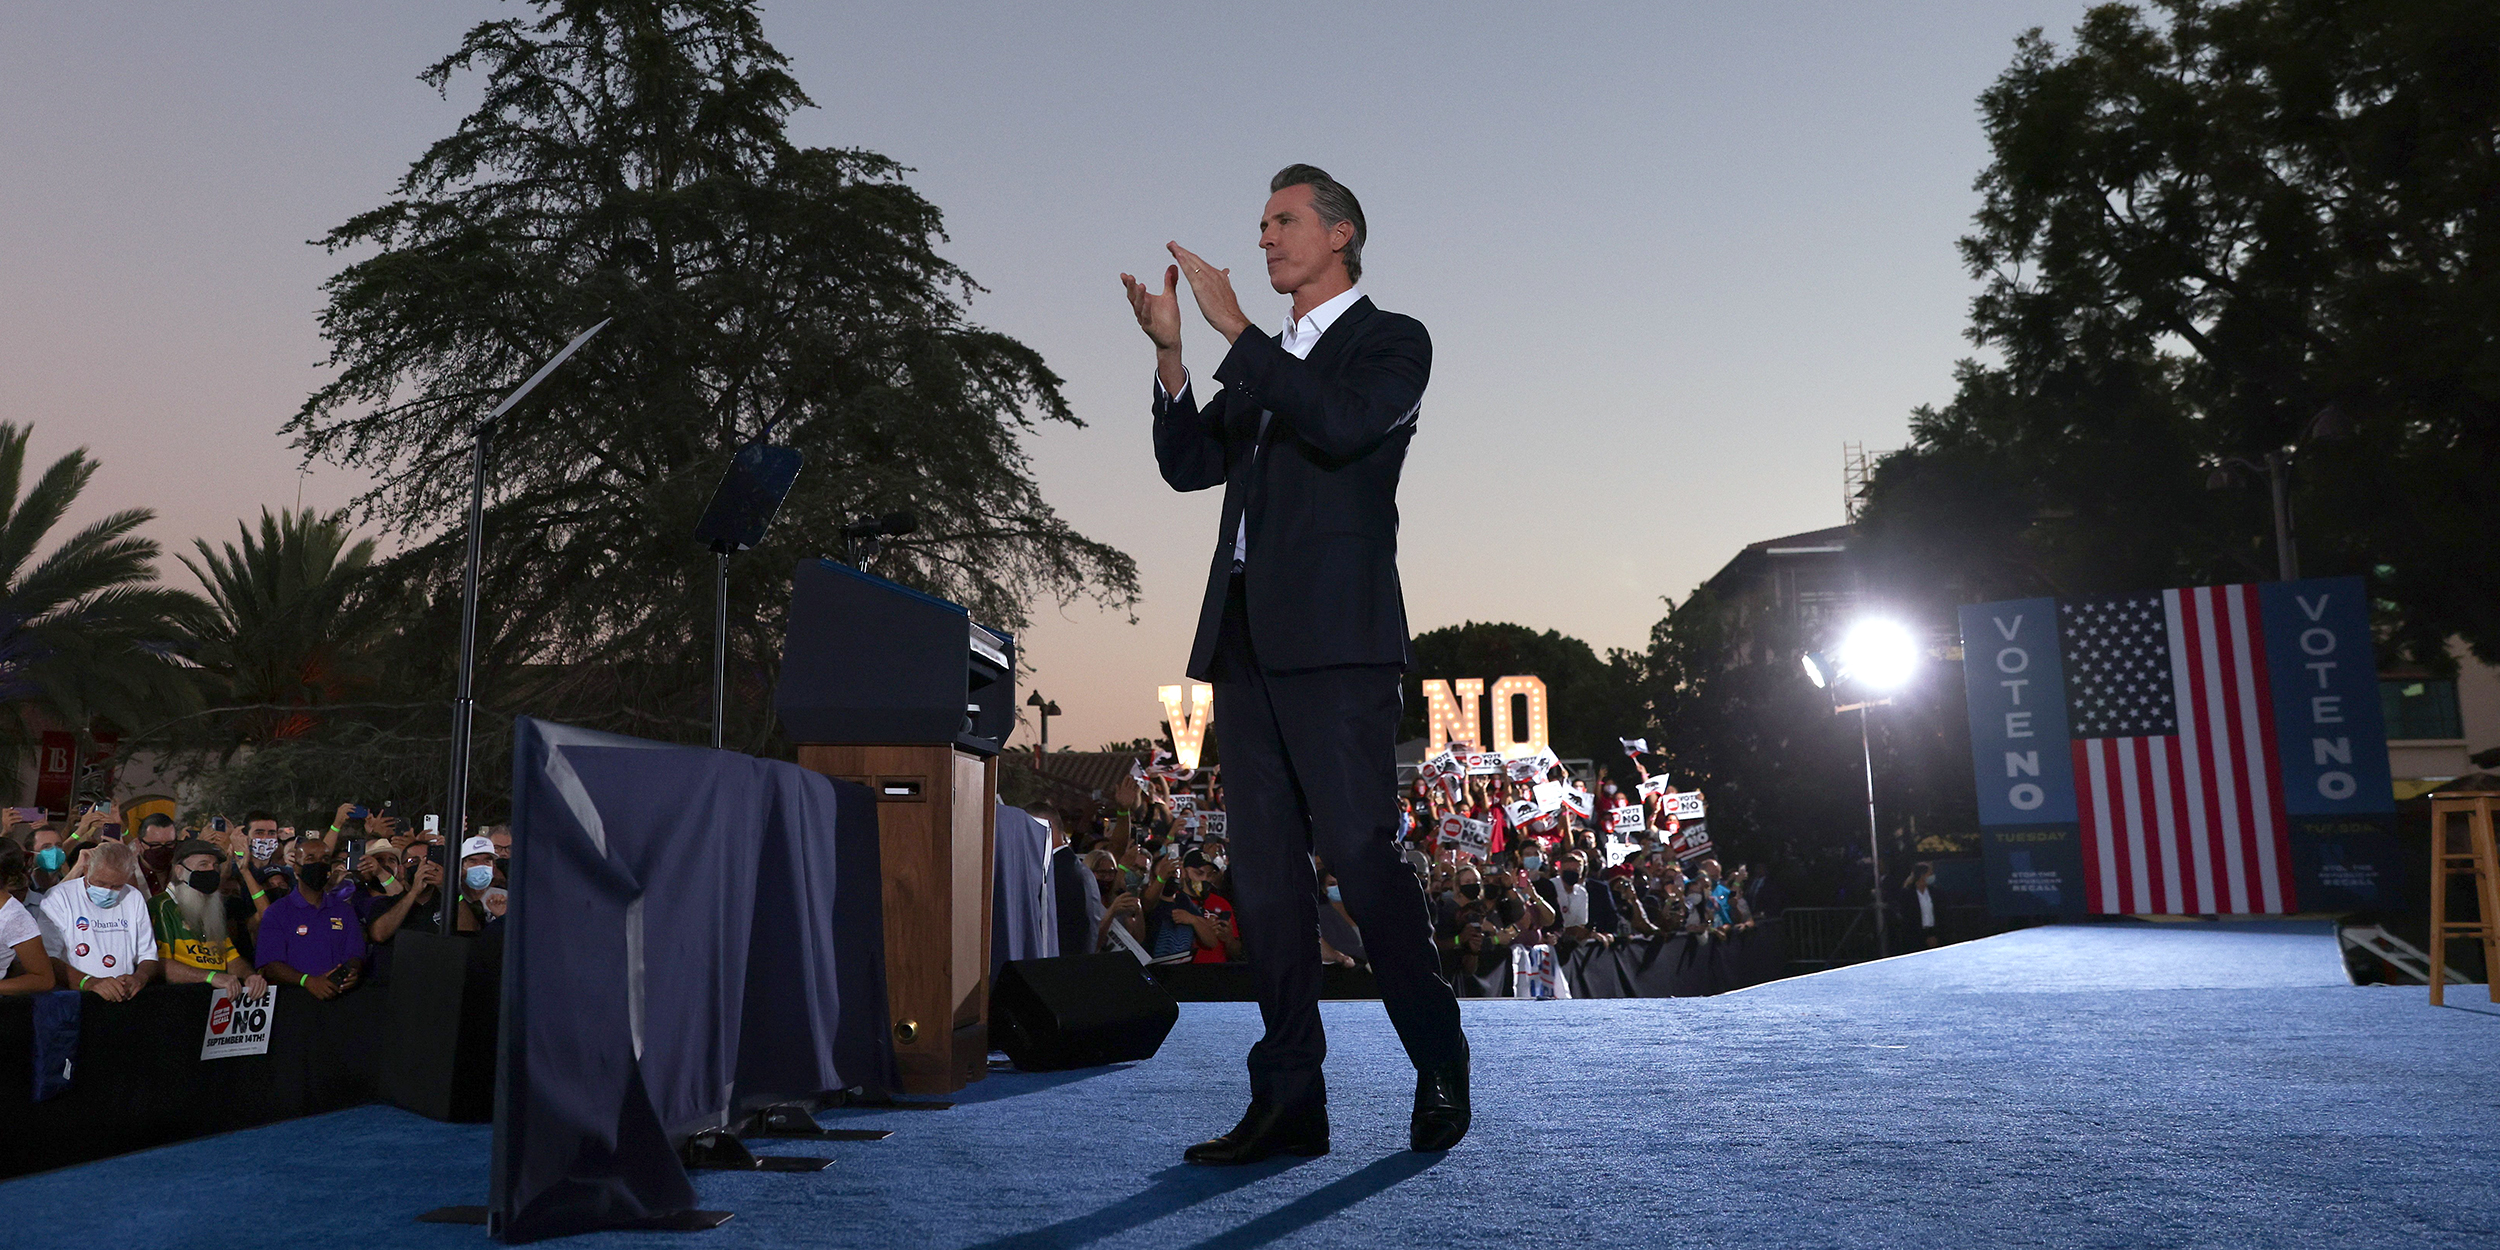 Newsom cruises to victory in recall election, will stay in office, NBC News projects